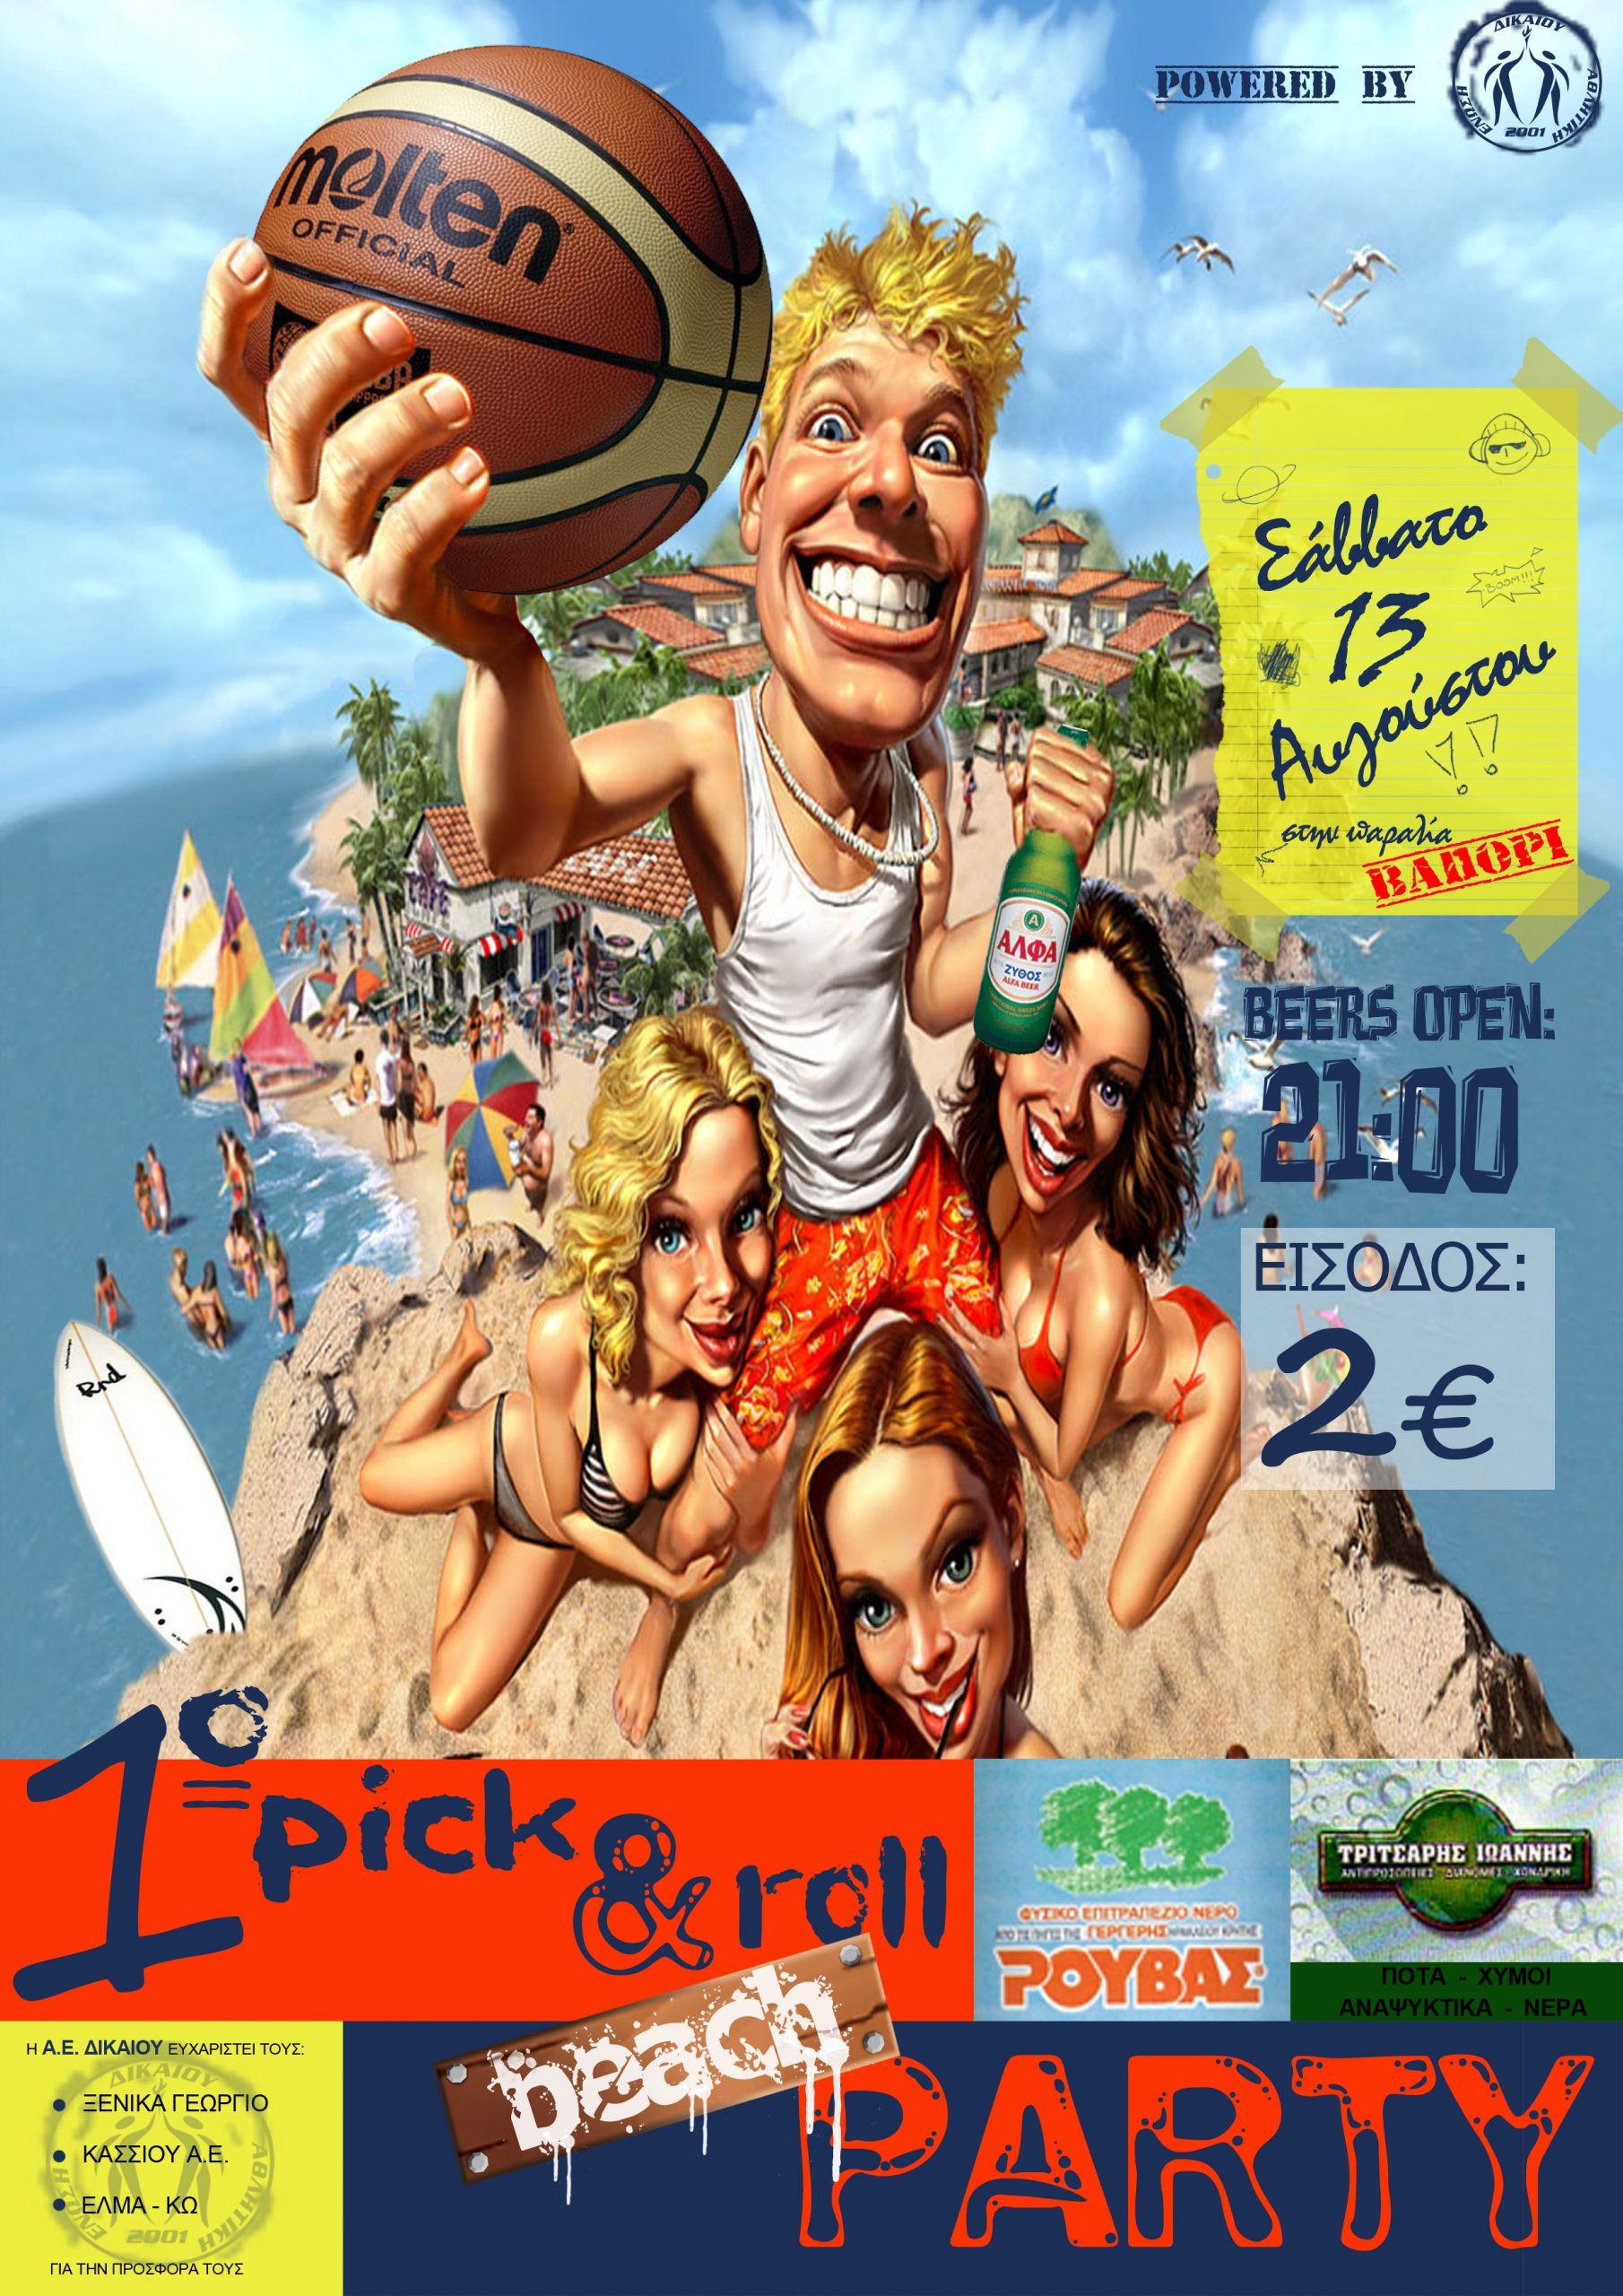 1 pick n roll beach party 13-8-2011